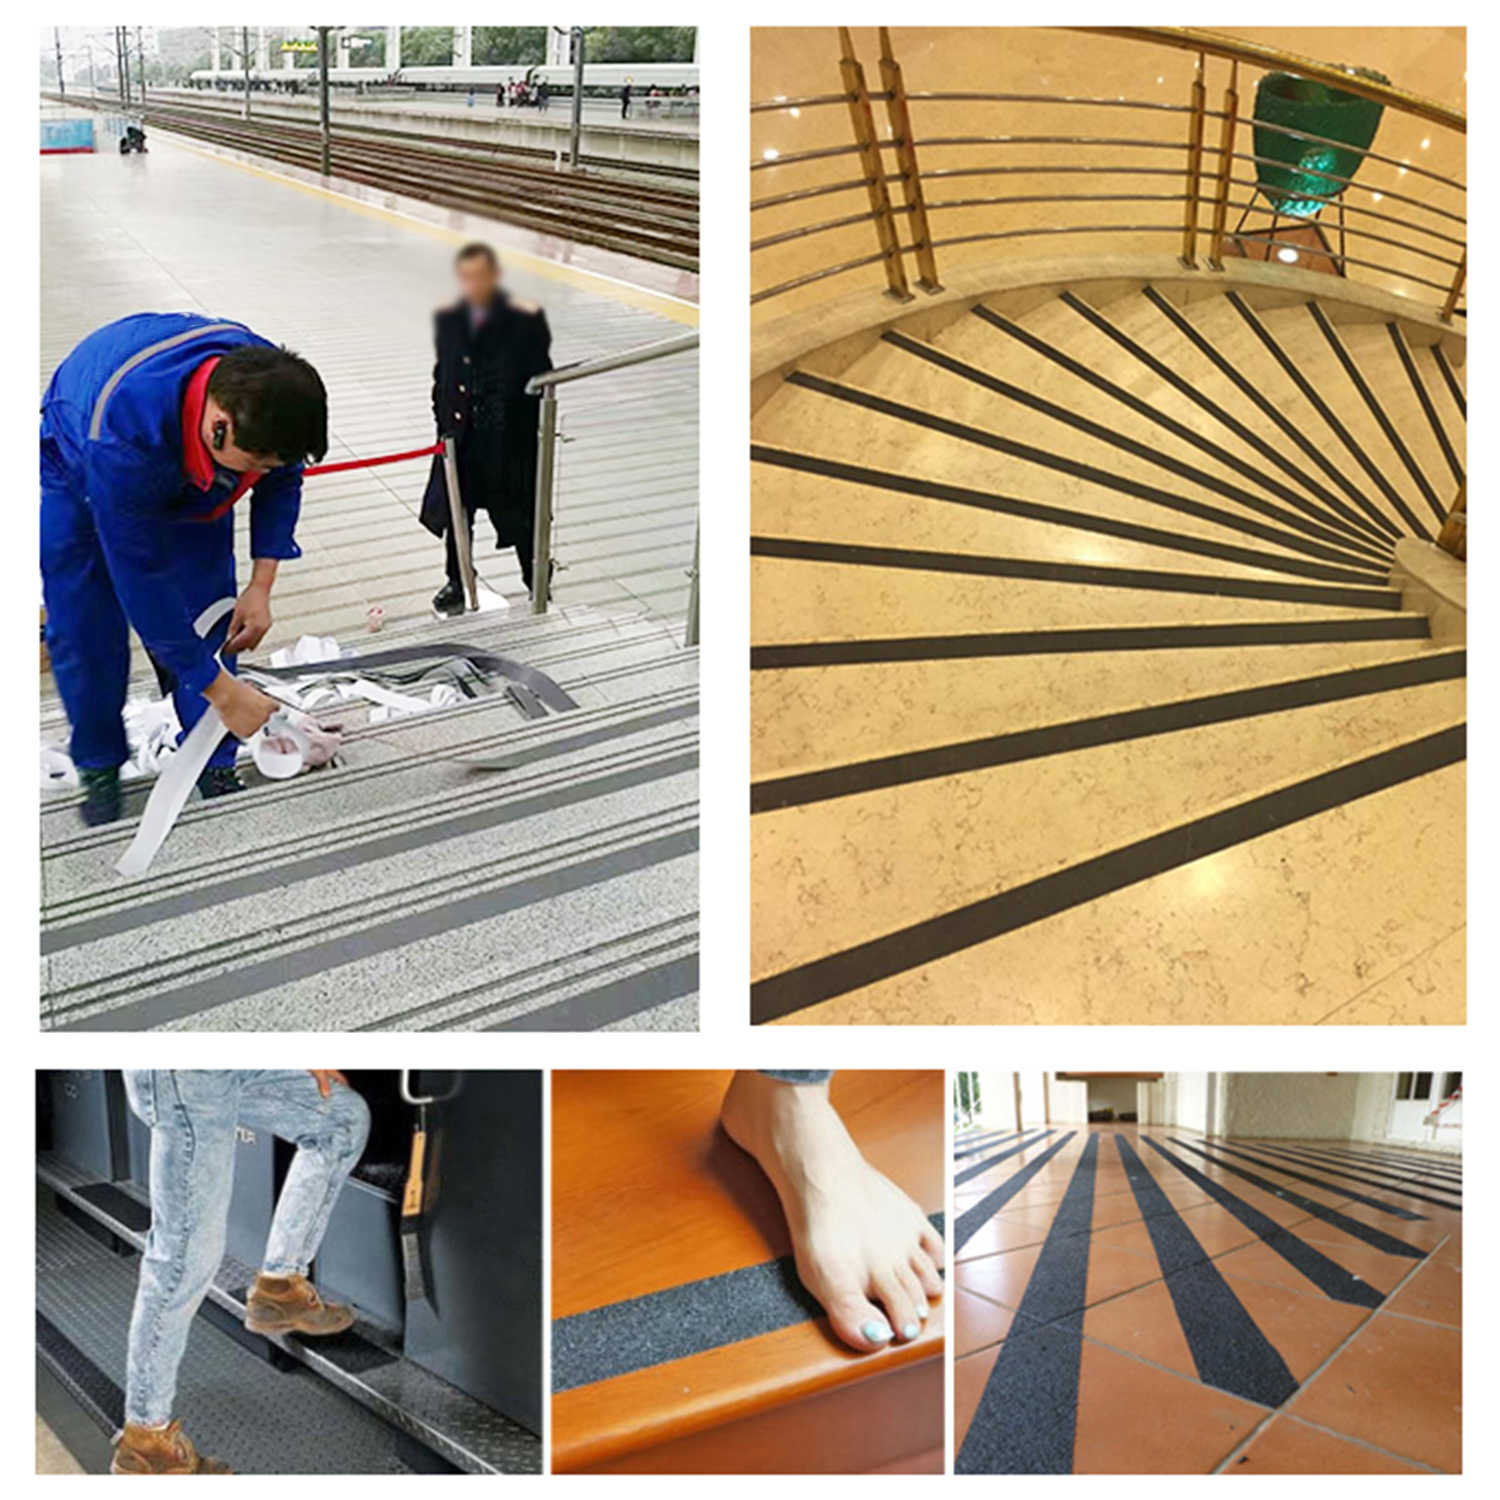 Diy Anti Slip Grip Tape Safety Non Slip Traction Tapes Adhesive Grip For Indoor Ladder Floor Outdoor Walkways Stair Tread Step Tape Aliexpress